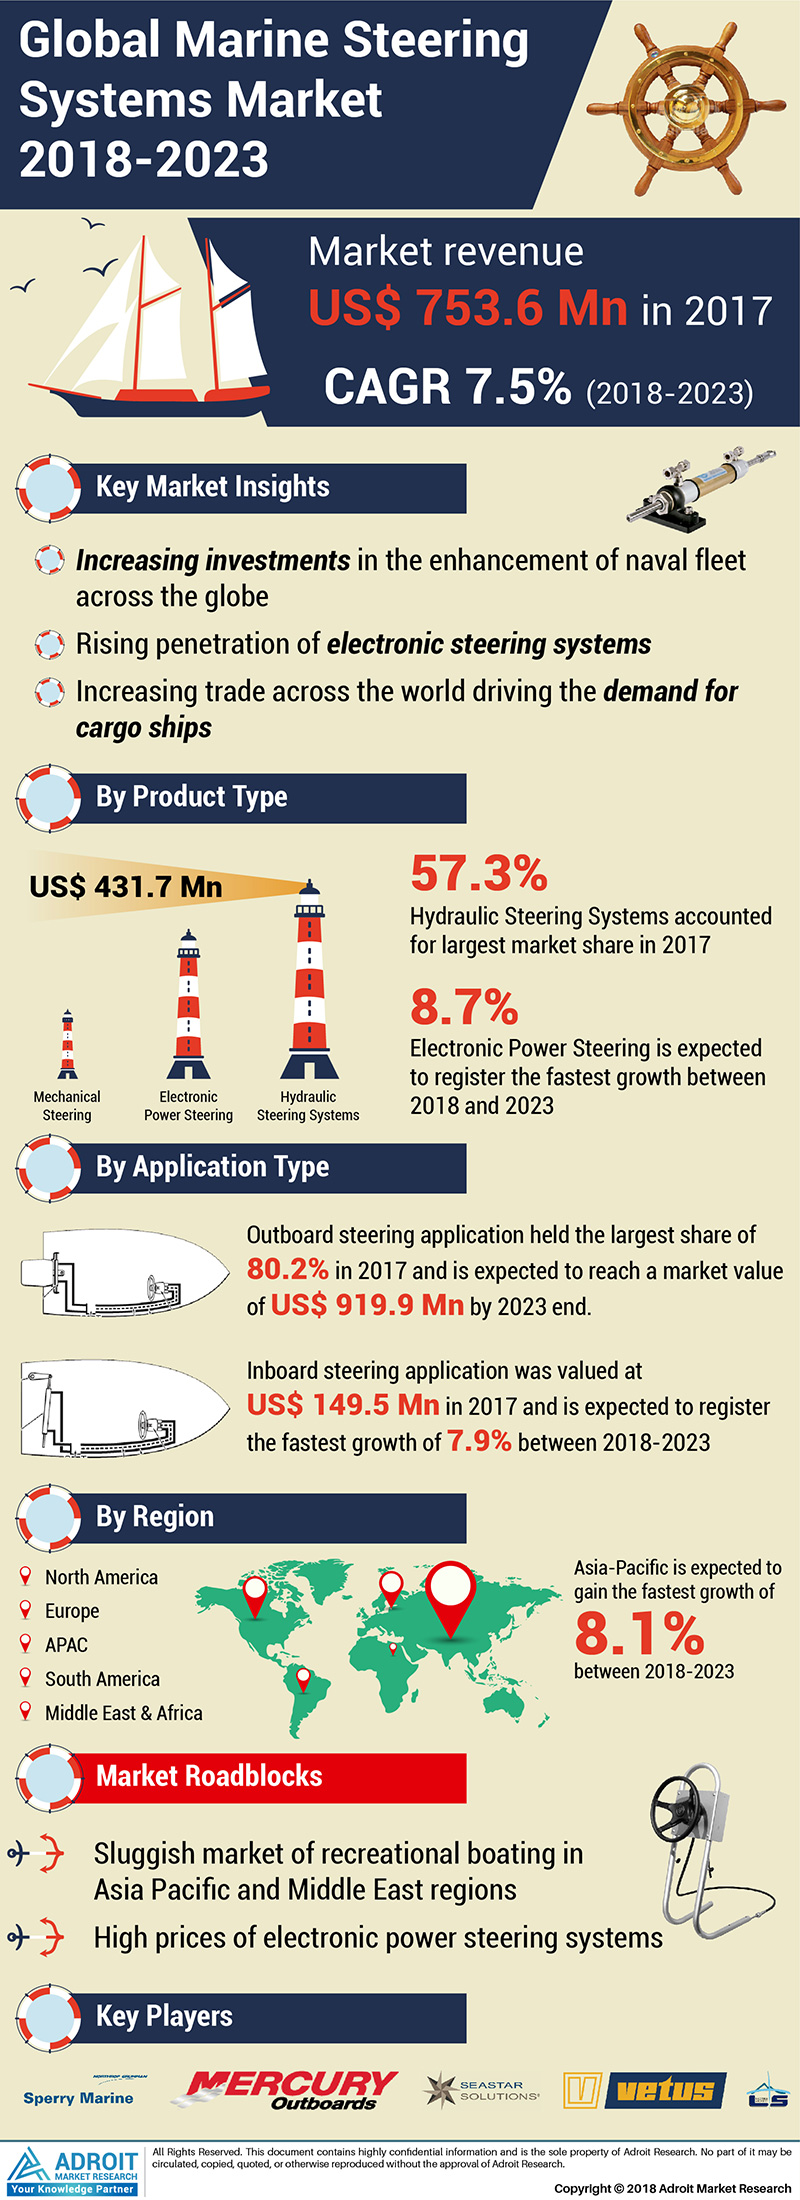 Global Marine Steering Systems Market Size 2017 By Type (Hydraulic Steering Systems, Electronic Power Steering and Mechanical Steering), By Application (Outboard Steering, Inboard Steering), By Region and Forecast 2017 to 2023